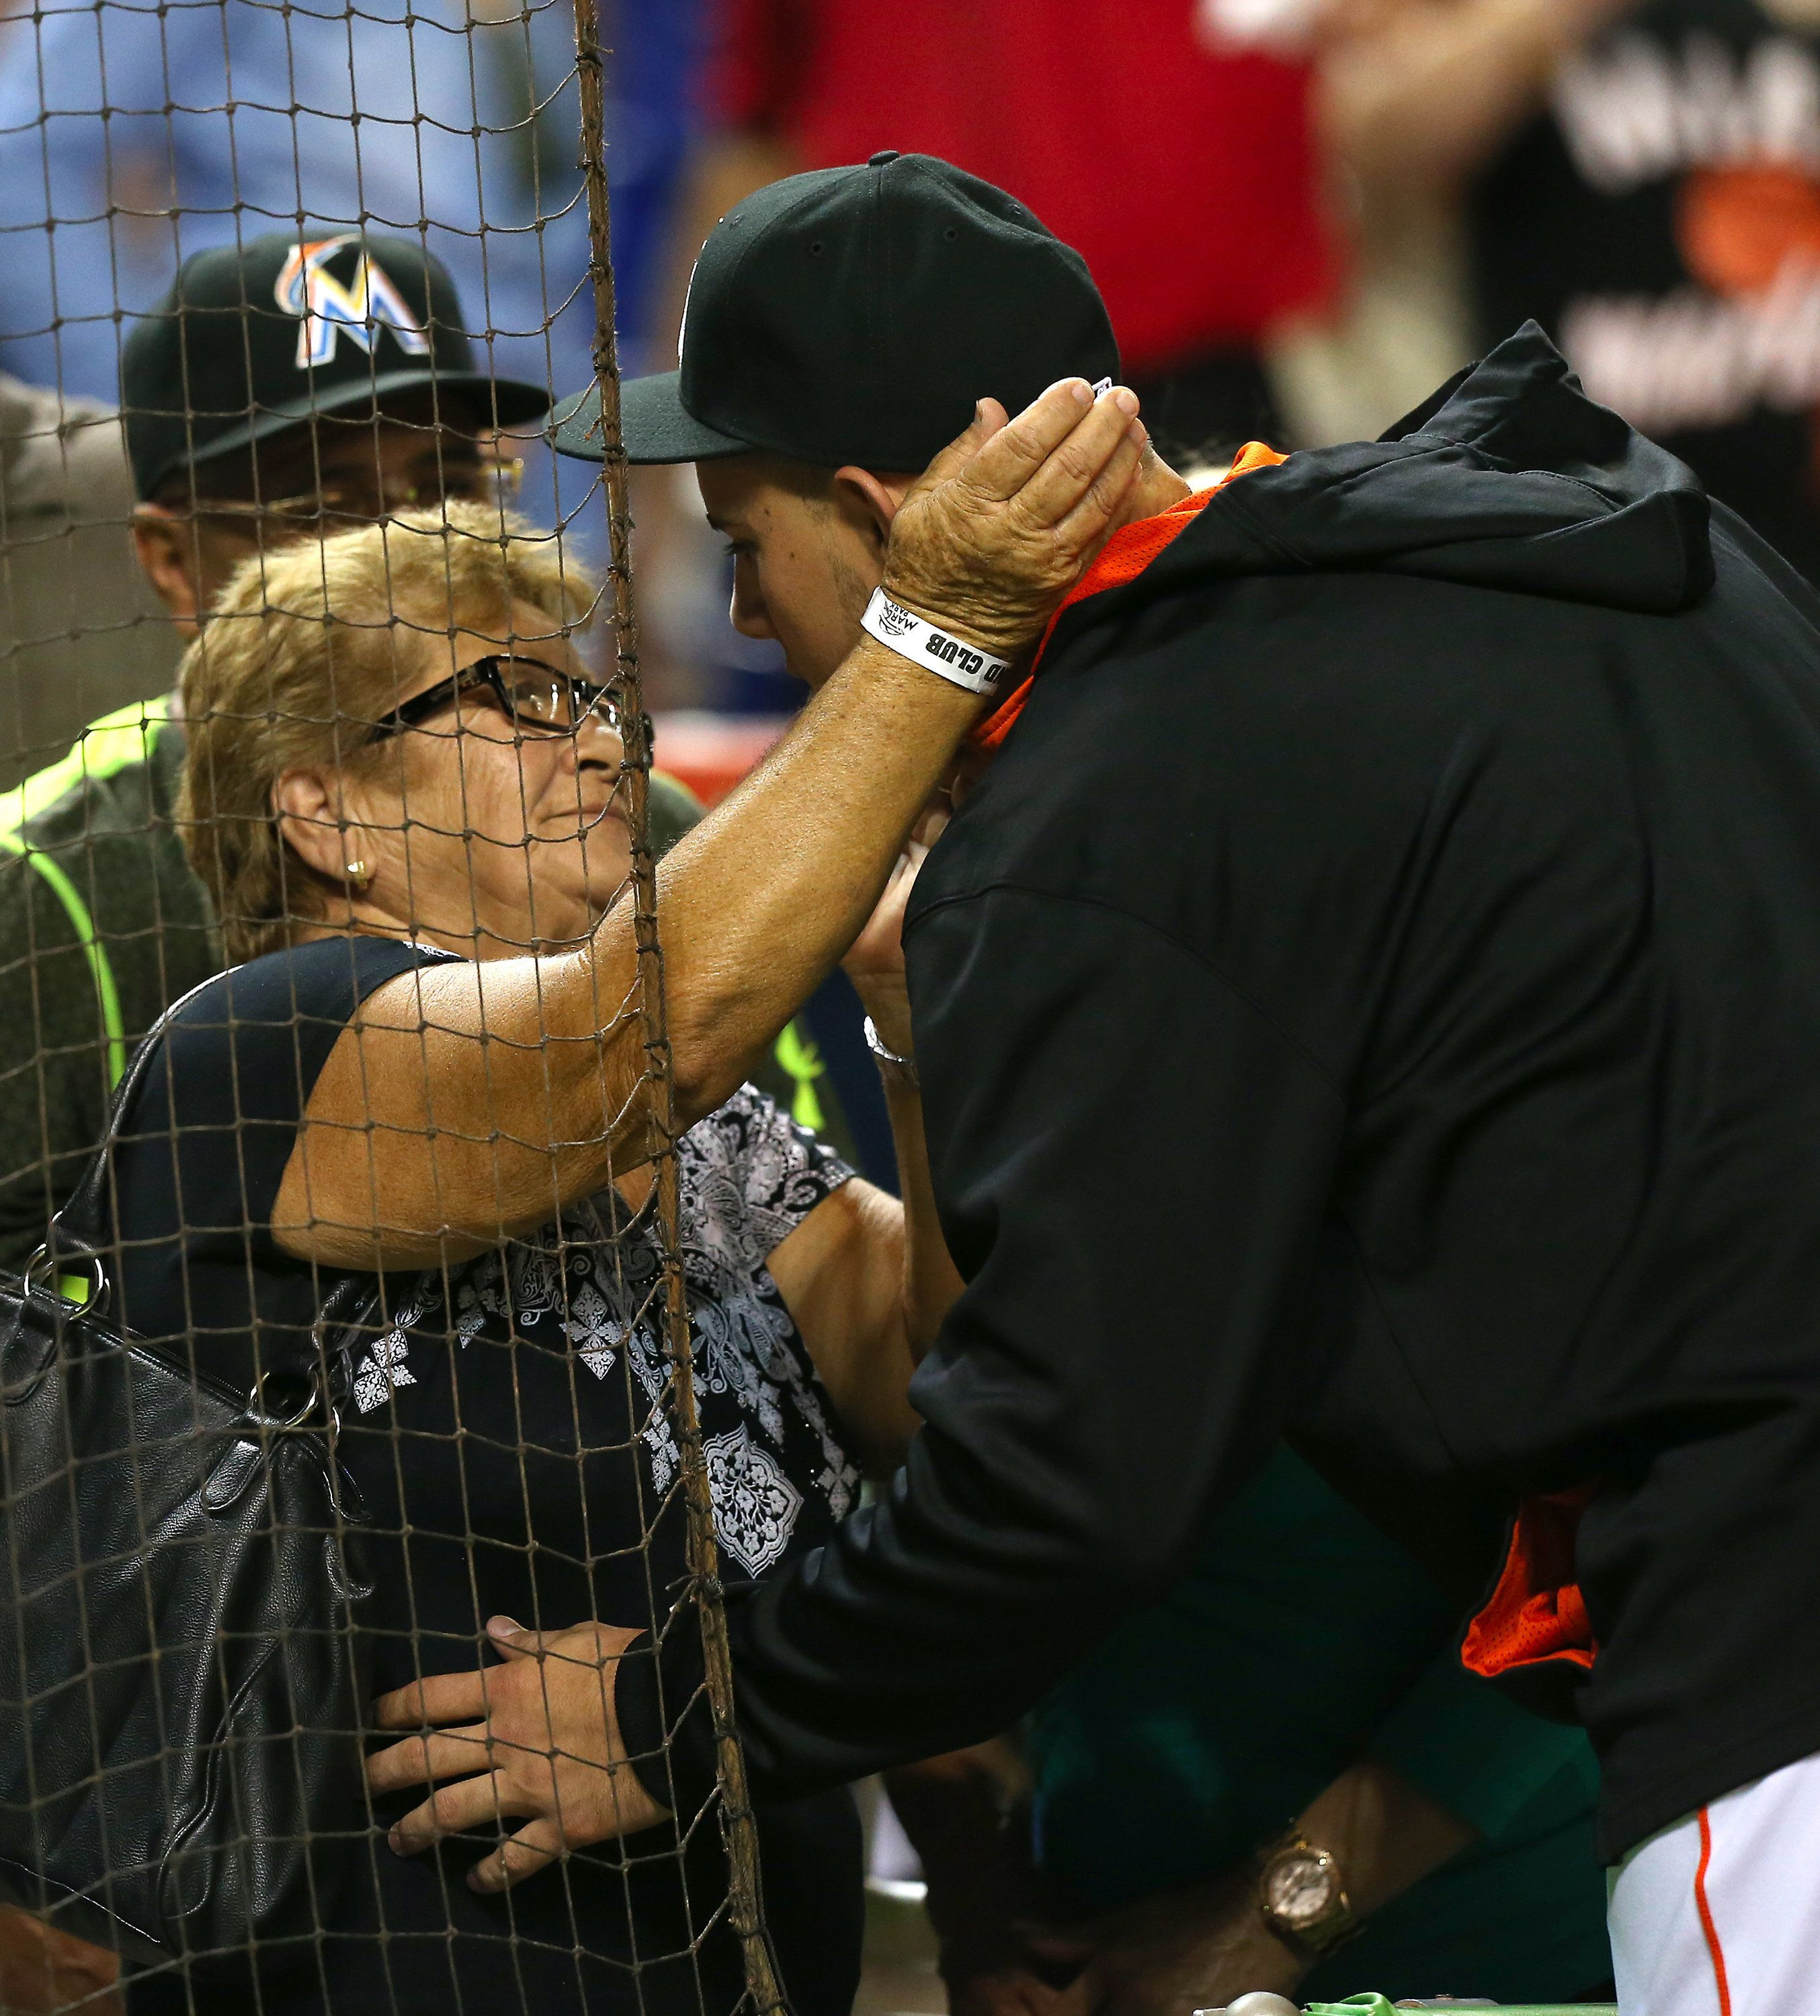 The Cuban-born pitcher is seen embracing his grandmother, Olga, following a 2-0 win against the Cincinnati Reds in July 2015.